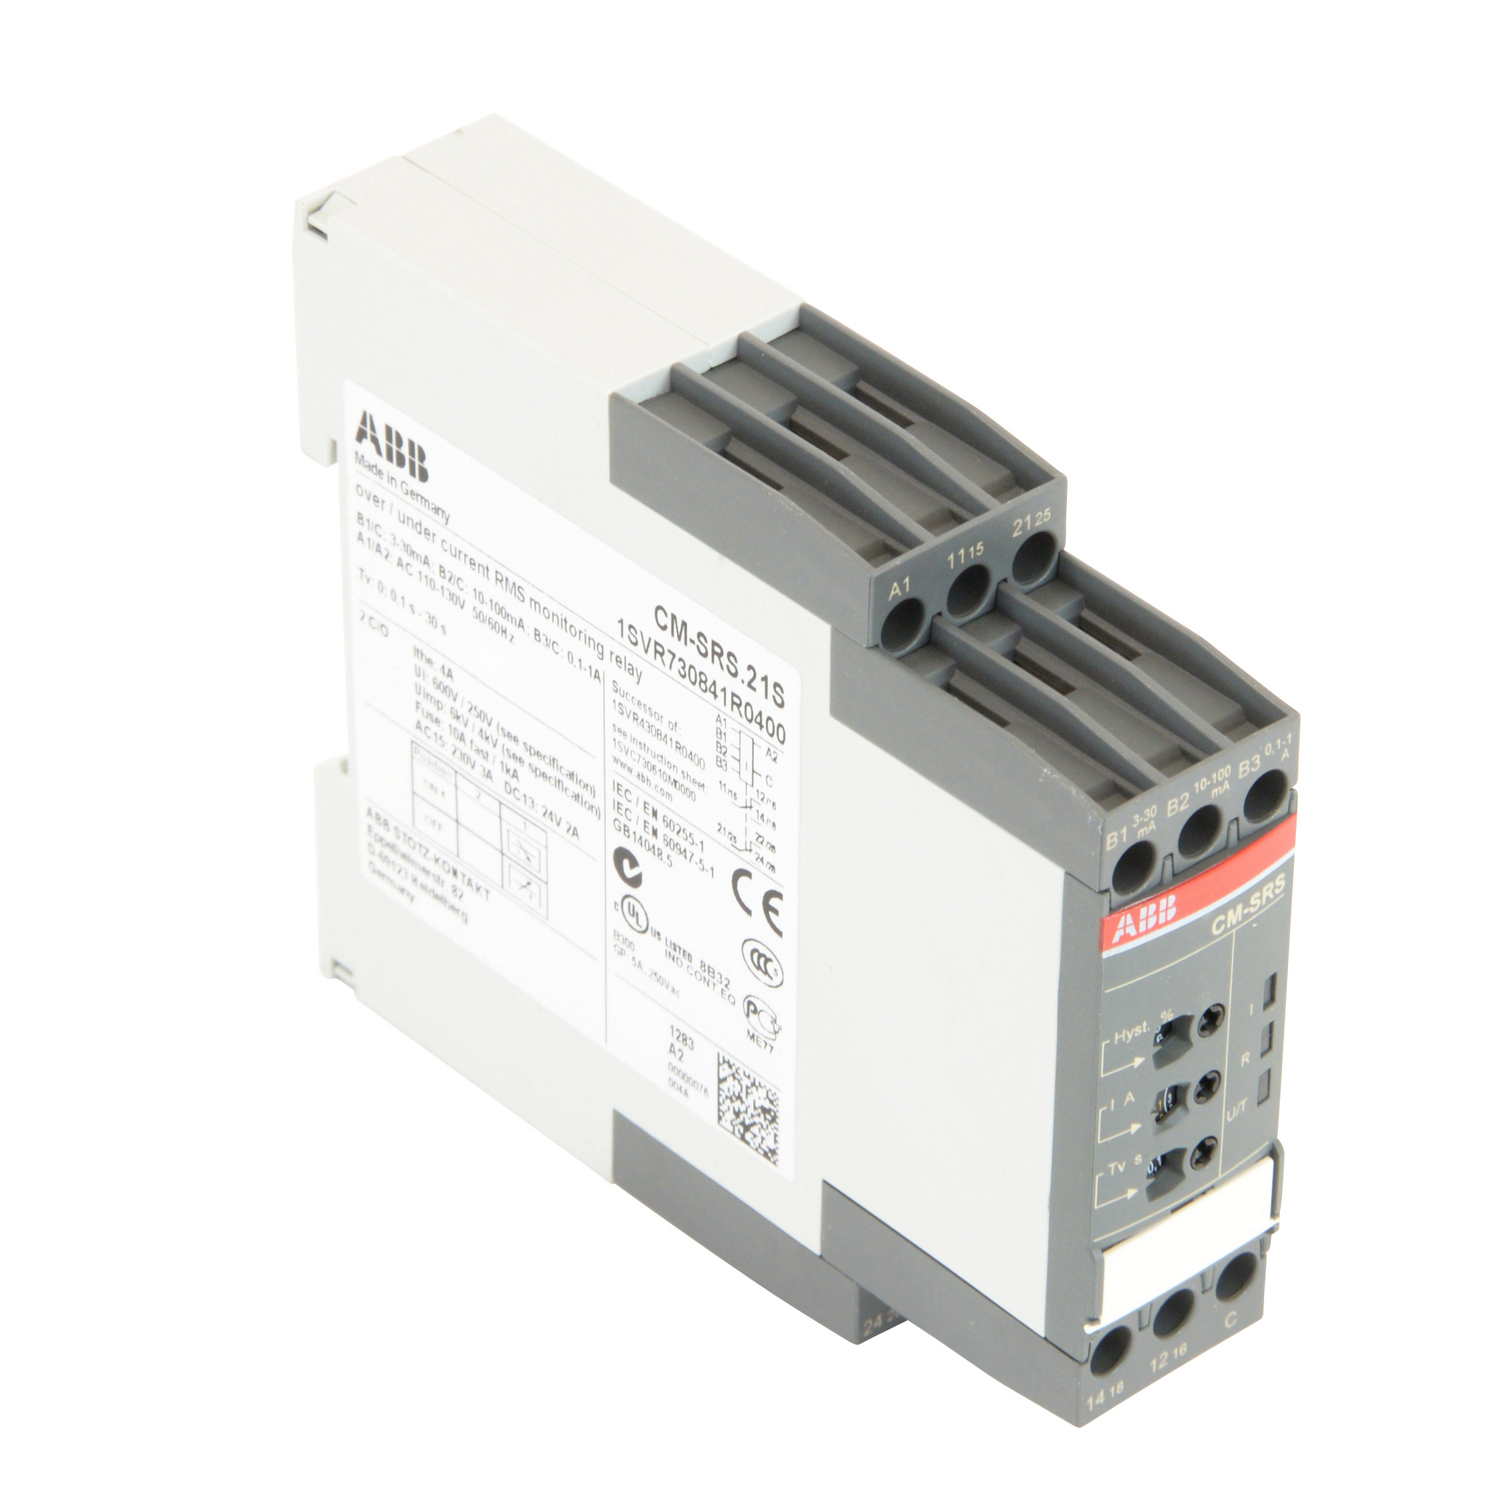 Most Popular Current Monitoring Relay Abb 1svr730841r0400